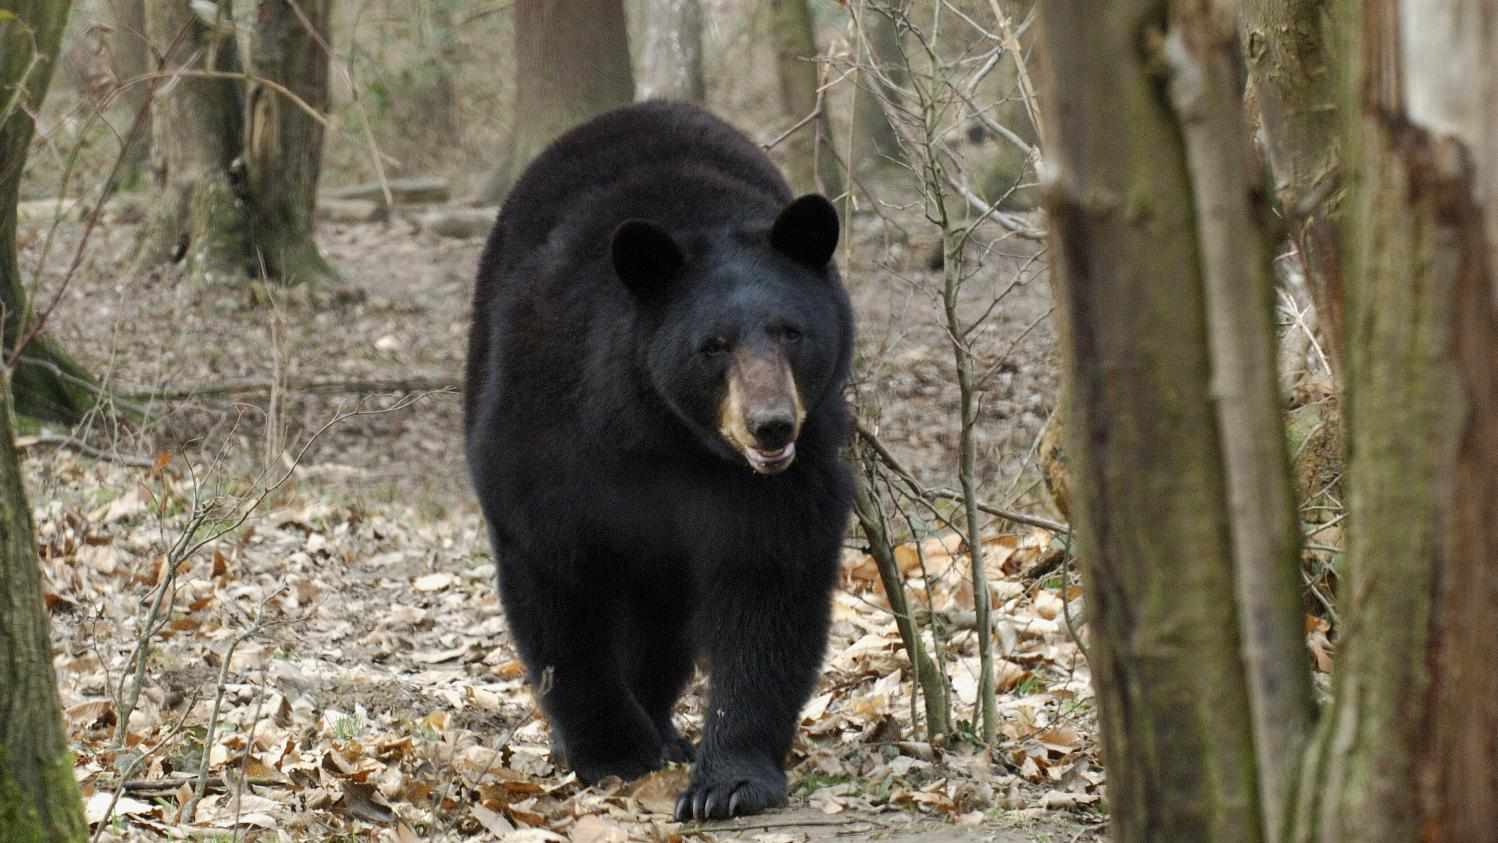 M t o l 39 hiver sera t il aussi froid que les ours du zoo for Zoo yvelines 78